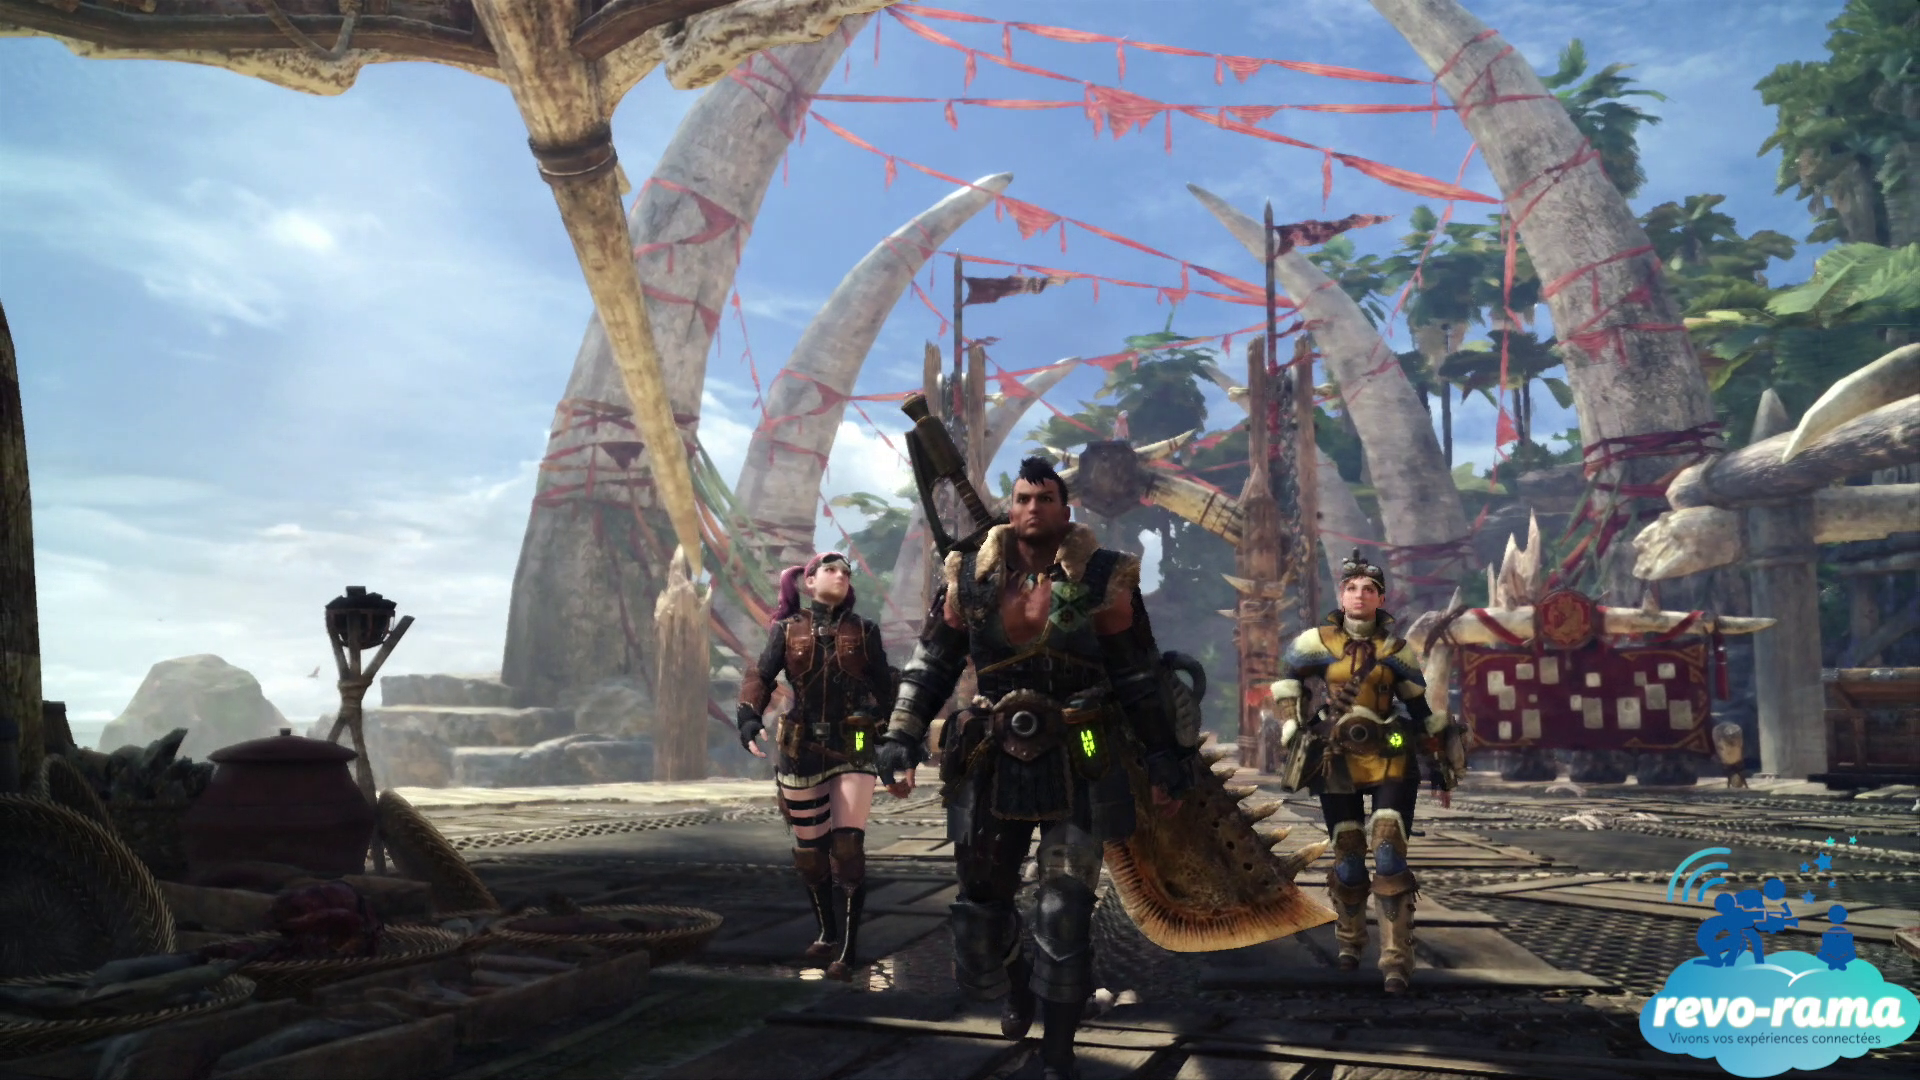 revo-rama-ps4-shadow-of-the-collossus-monster-hunter-world-bravo-team-2018